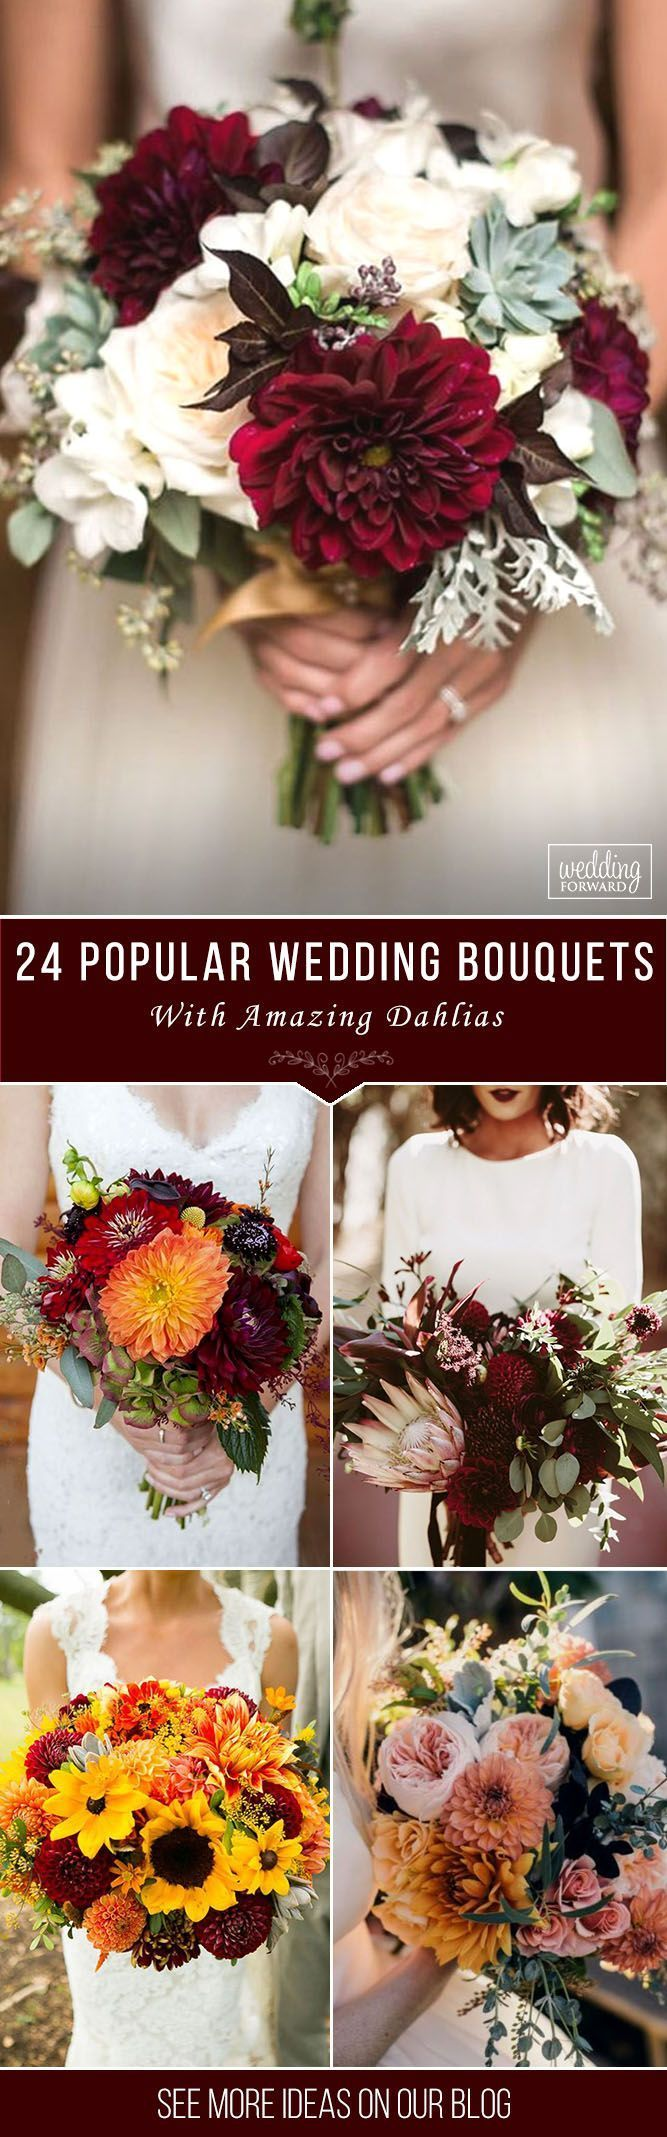 24 Wedding Bouquet Ideas & Inspiration - Peonies, Dahlias, and Lilies ❤️ The wedding bouquet ideas inspiration is an important part of the bridal look. By amazing and choose your own bouquet with peonies, lilies, and dahlias. See more: http://www.weddingforward.com/wedding-bouquet-ideas-inspiration/ #wedding #bouquets